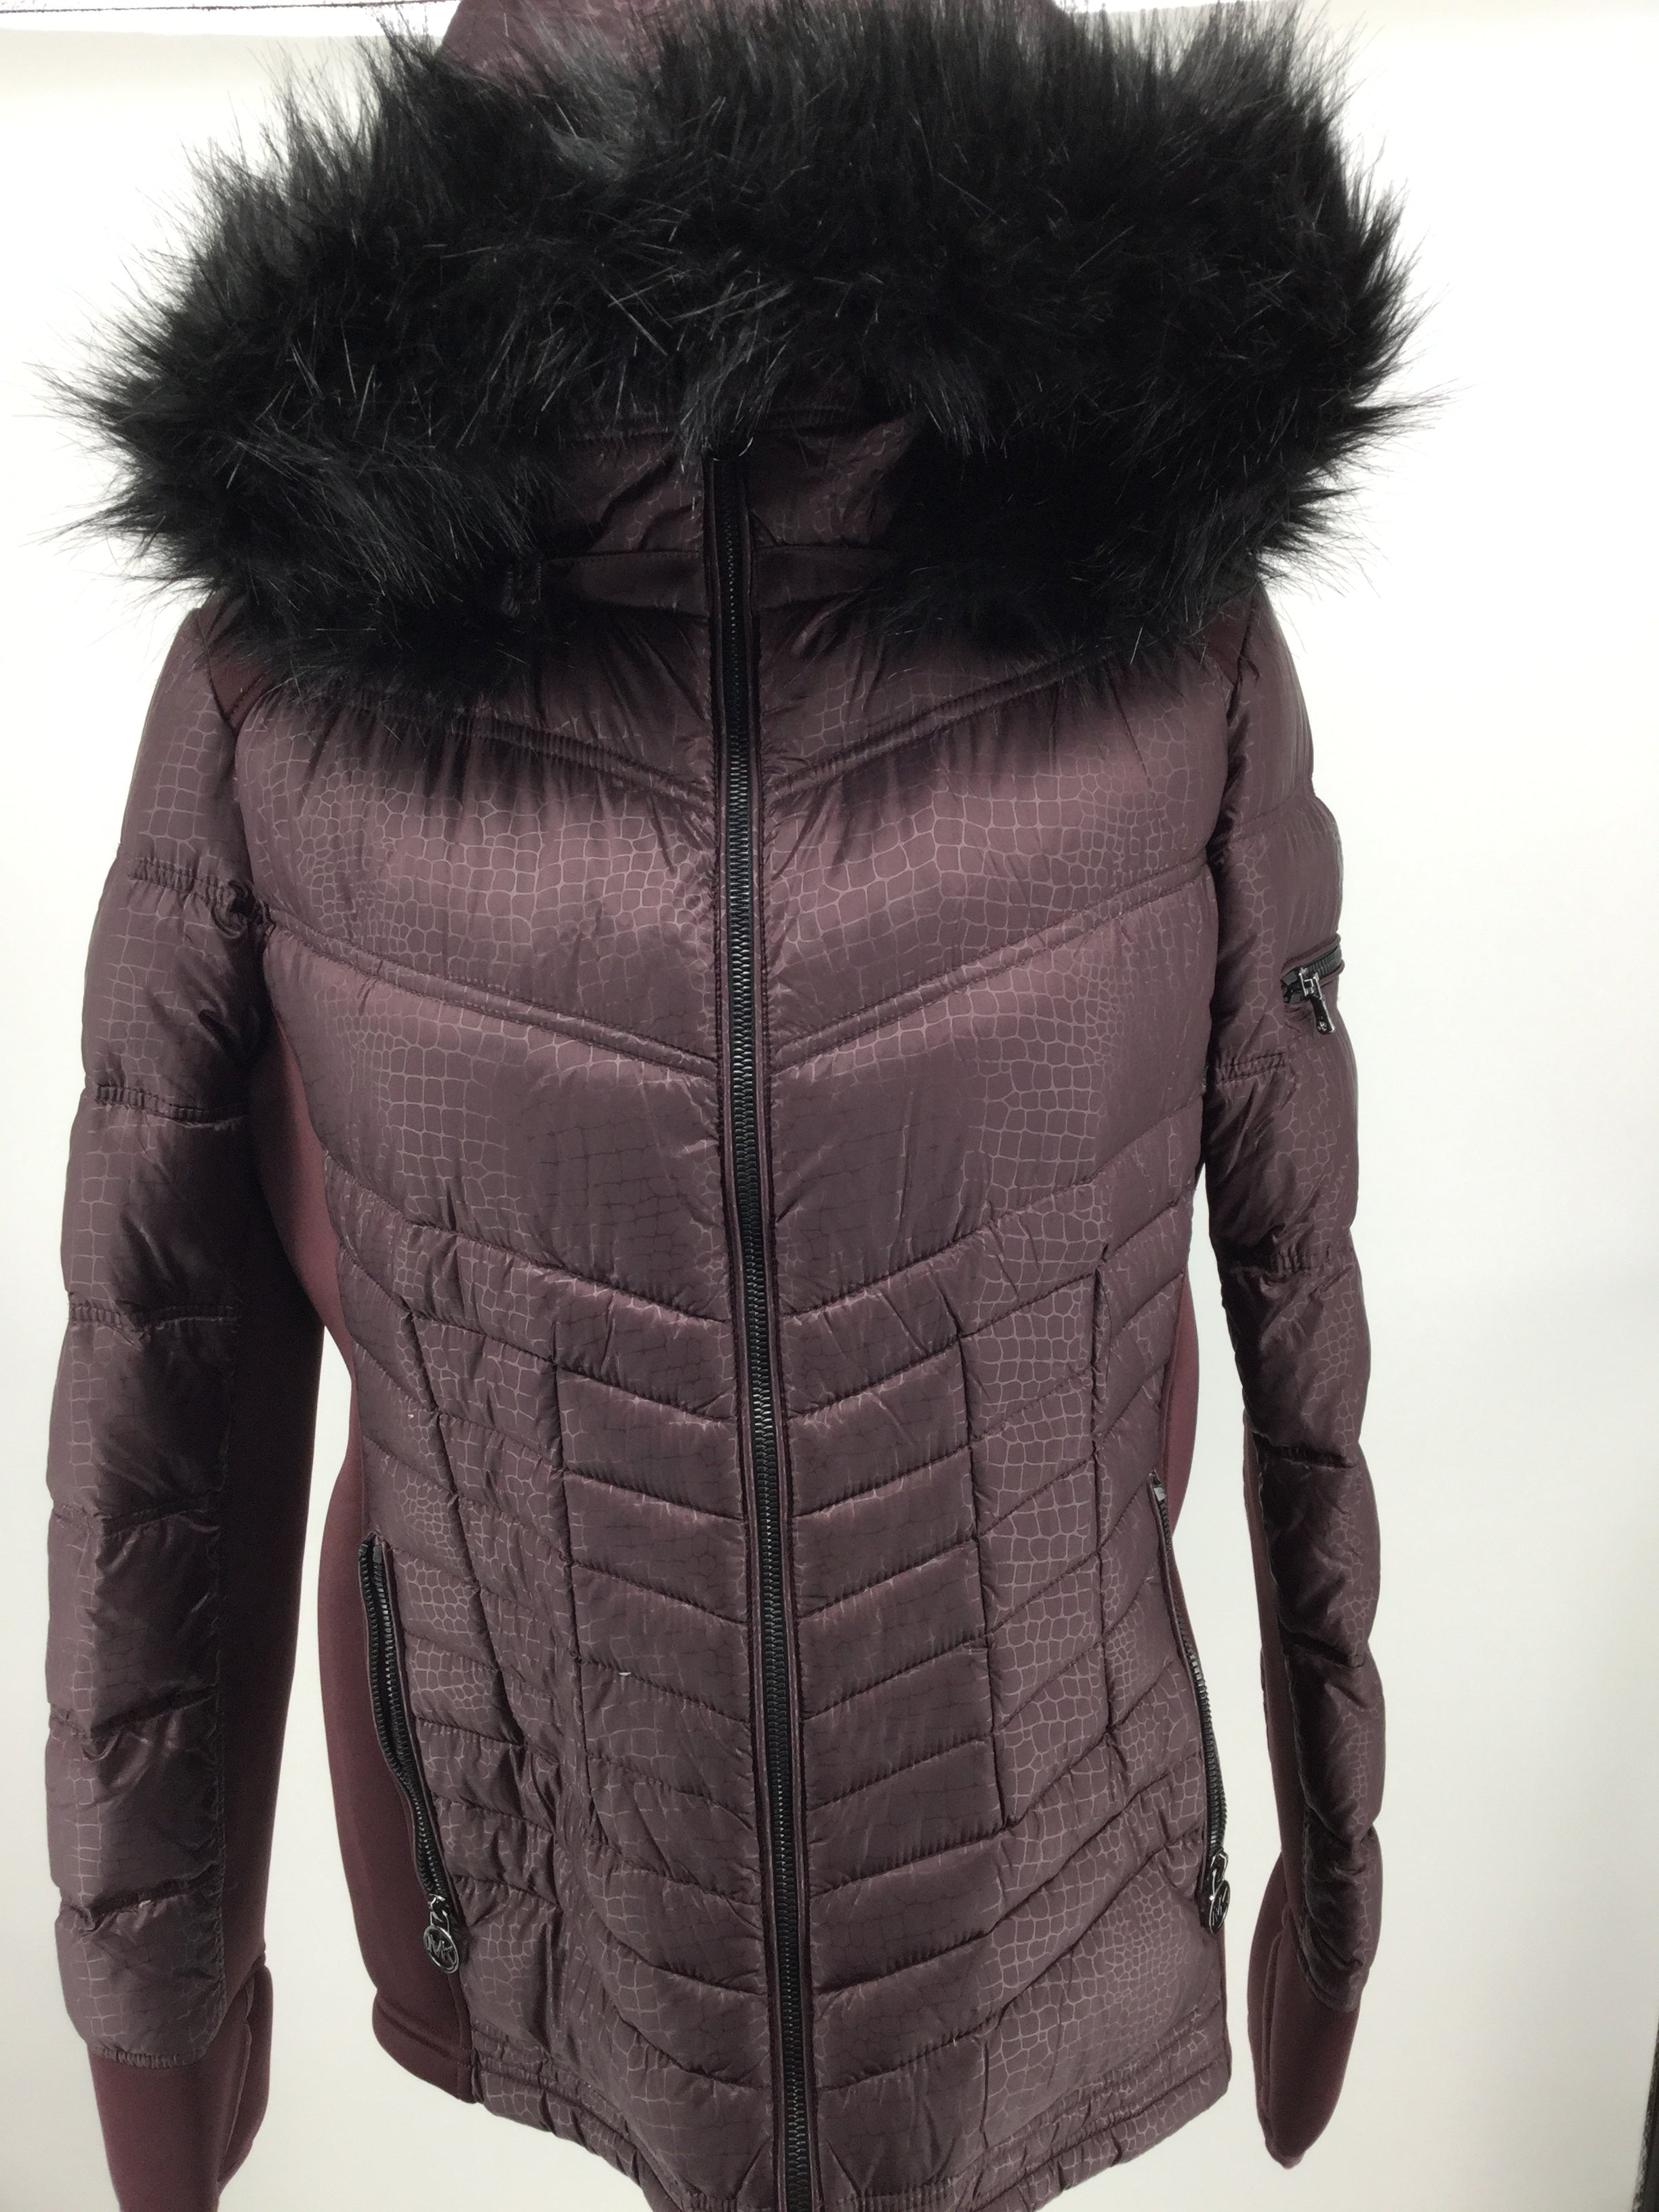 APPAREL,OUTERWEAR - TRIMMED IN FAUX FUR, MICHAEL MICHAEL KORS' DOWN PUFFER COAT COMBINES ACTIVE DESIGN WITH UPSCALE STYLE. STAND COLLAR; REMOVABLE ZIP-OFF HOOD WITH FAKE FUR TRIM ZIPPER CLOSURE AT FRONT LONG SLEEVES ZIPPER POCKETS AT HIPS; ZIPPER POCKET AT SLEEVE ALLOVER QUILTING STRETCH-KNIT TRIM AT SIDES AND UNDER SLEEVE DOWN AND FEATHERS FILL LINED LIGHTWEIGHT HITS AT HIP; APPROX. 27